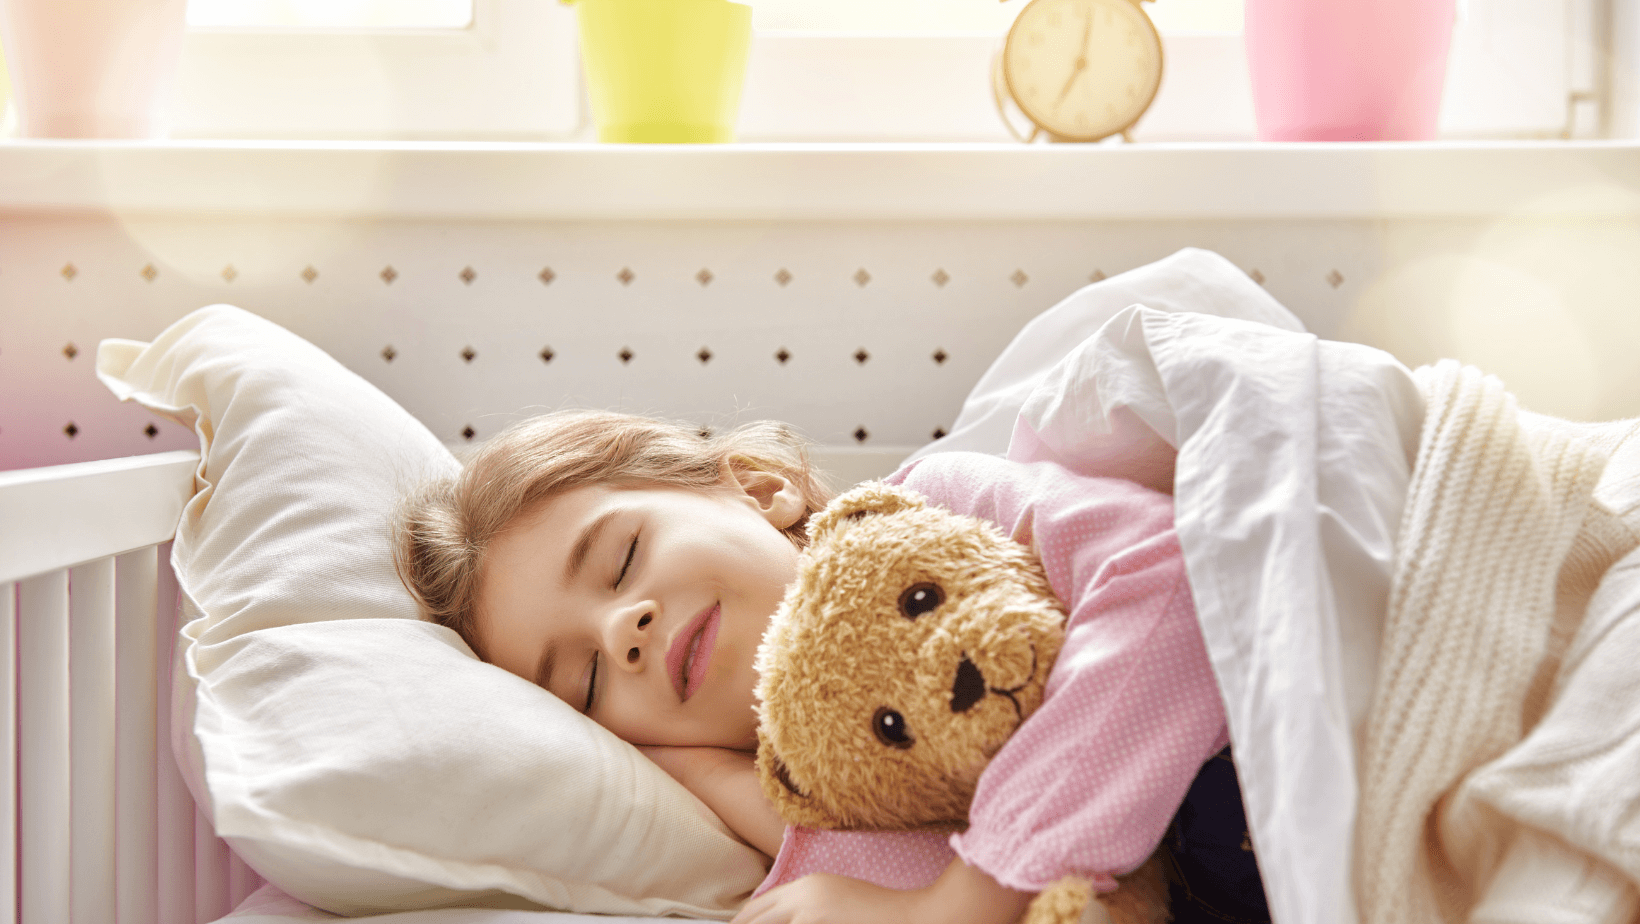 sleeping girl laying in bed holding teddy bear